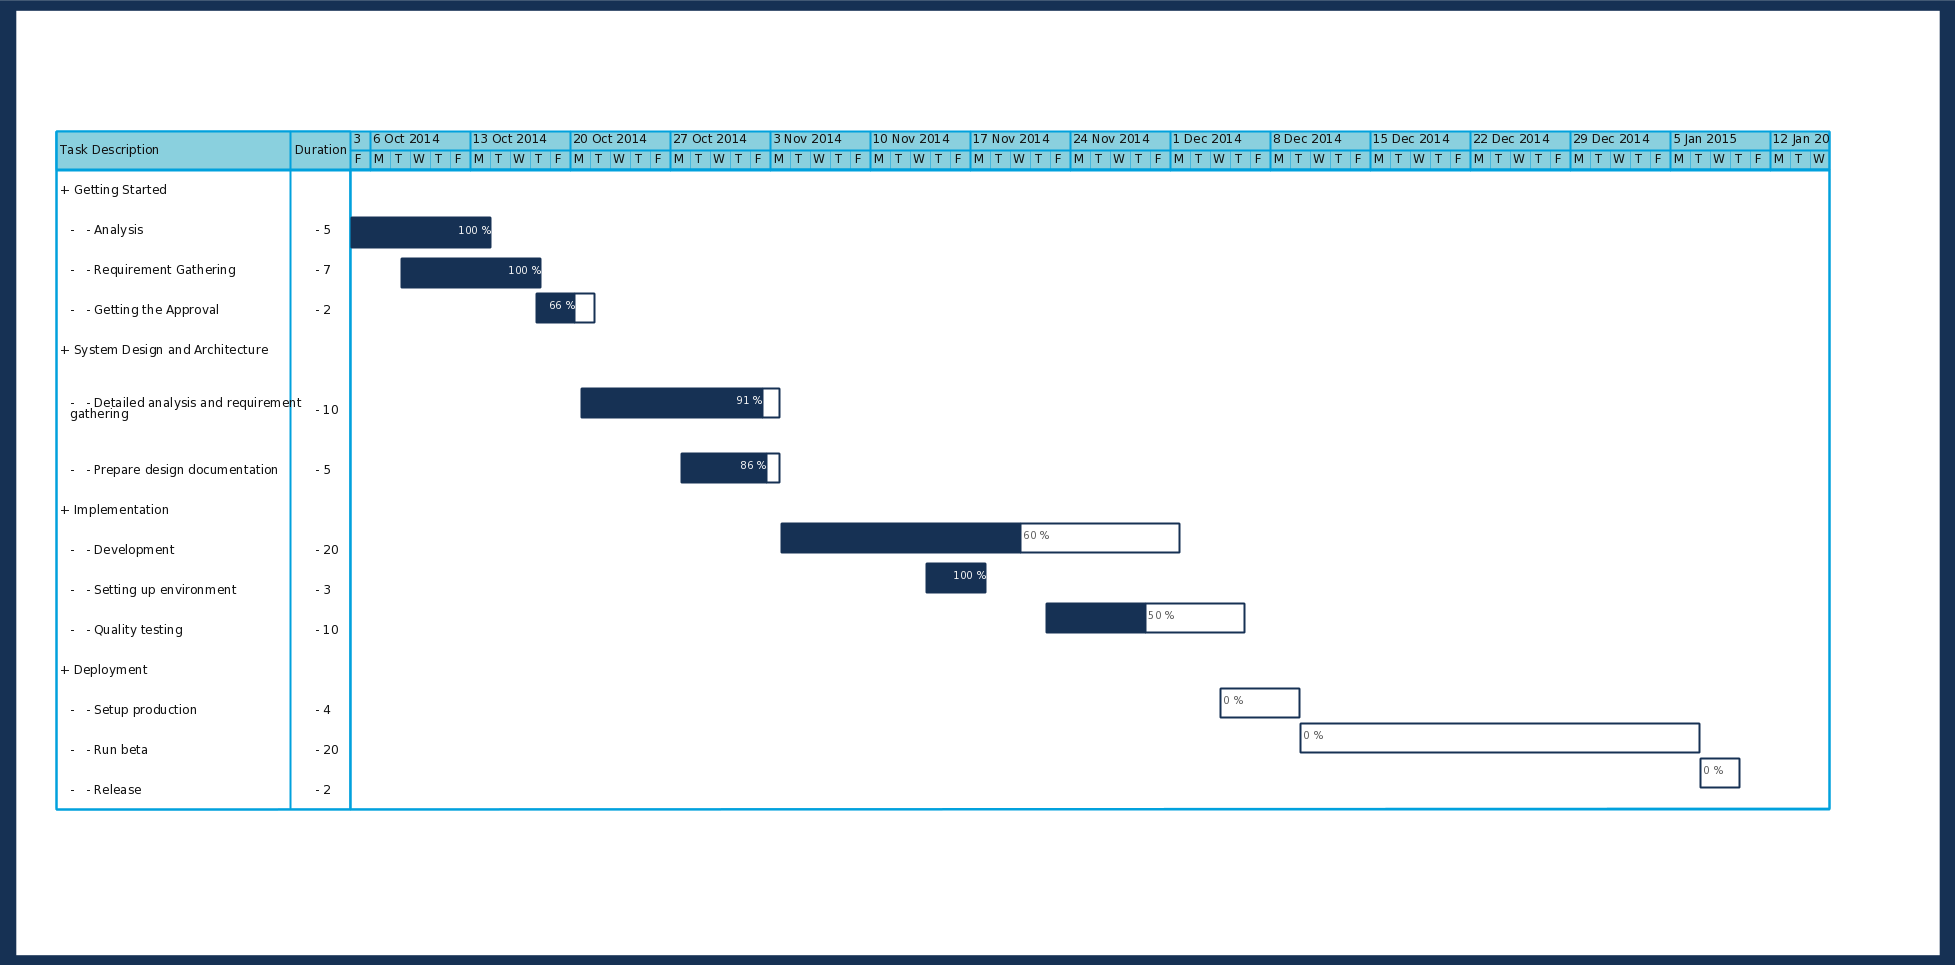 Gantt chart excel create professional examples of sequence diagram a simple traditional gantt chart that utilizes the creately smart 4aee7c8c25a8d4711d430ec6f96c992c 464011567842577582 gantt chart excel create professional nvjuhfo Choice Image